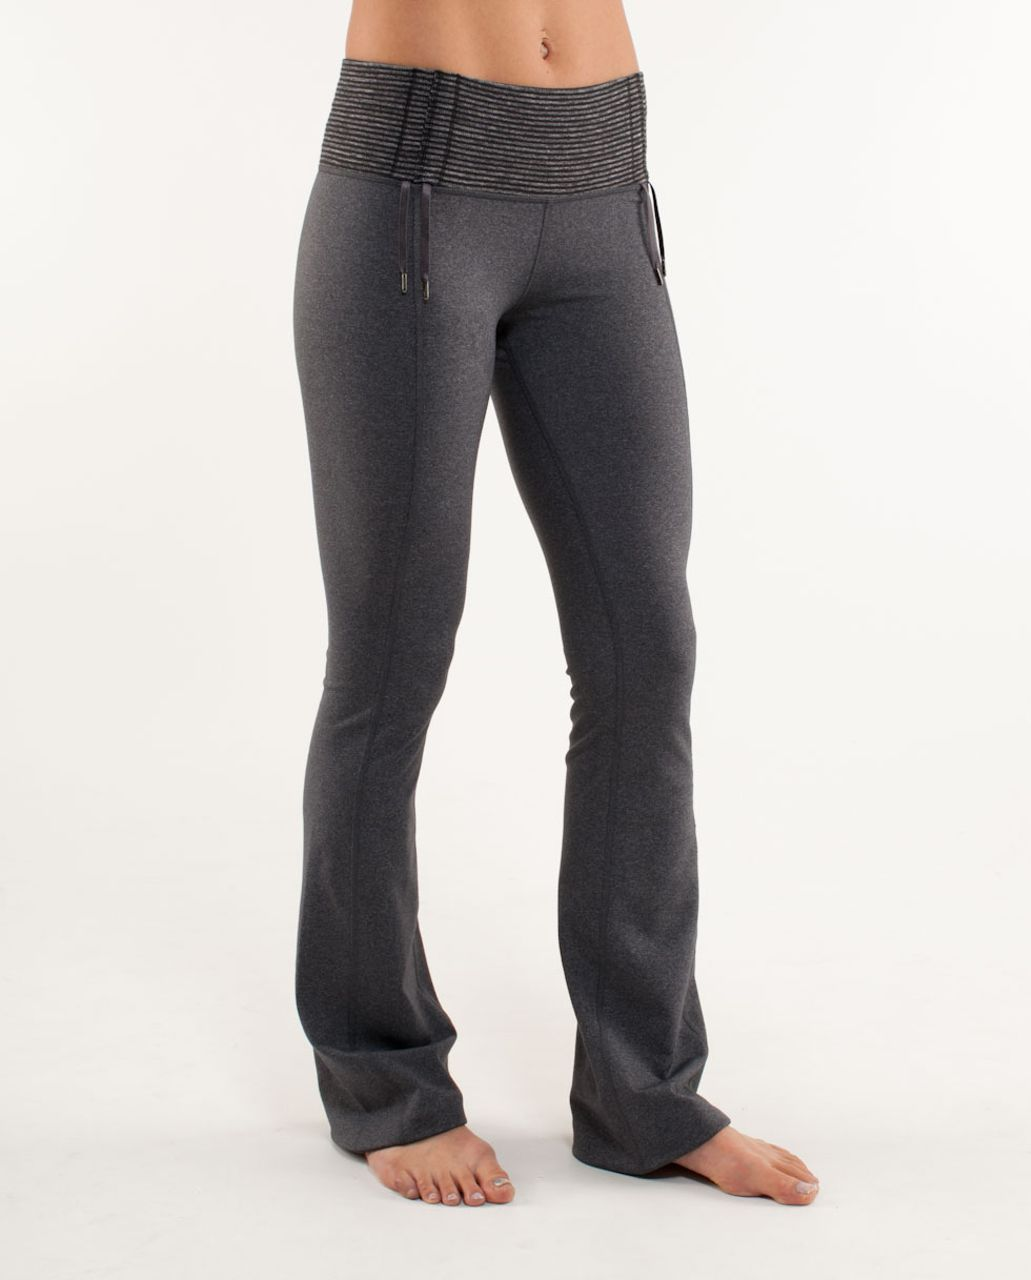 Lululemon Recognition Pant - Heathered Coal /  Black Heathered Coal Mini Check